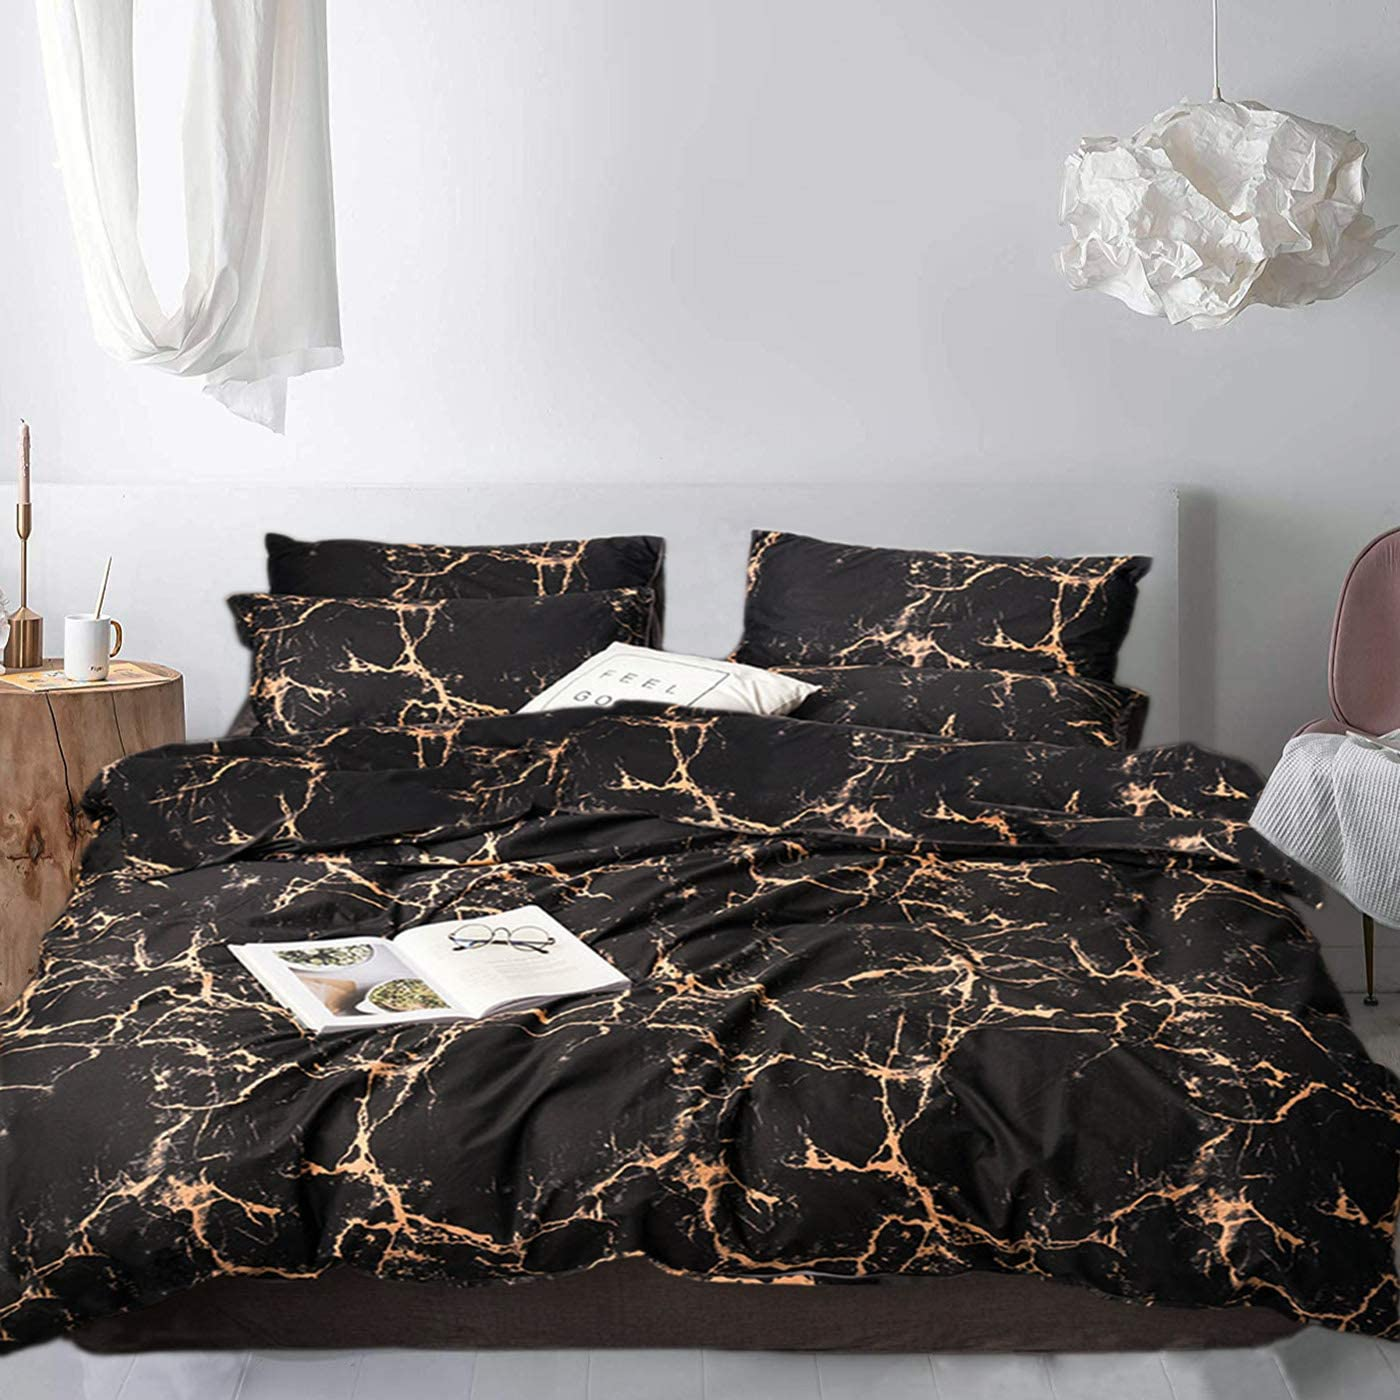 Jumeey Black Duvet Cover Marble Bedding Set Queen Abstract Rose Gold 100% Soft Cotton Bedding Full Size for Men Women 1 Duvet Cover with 2 Pillow Shams